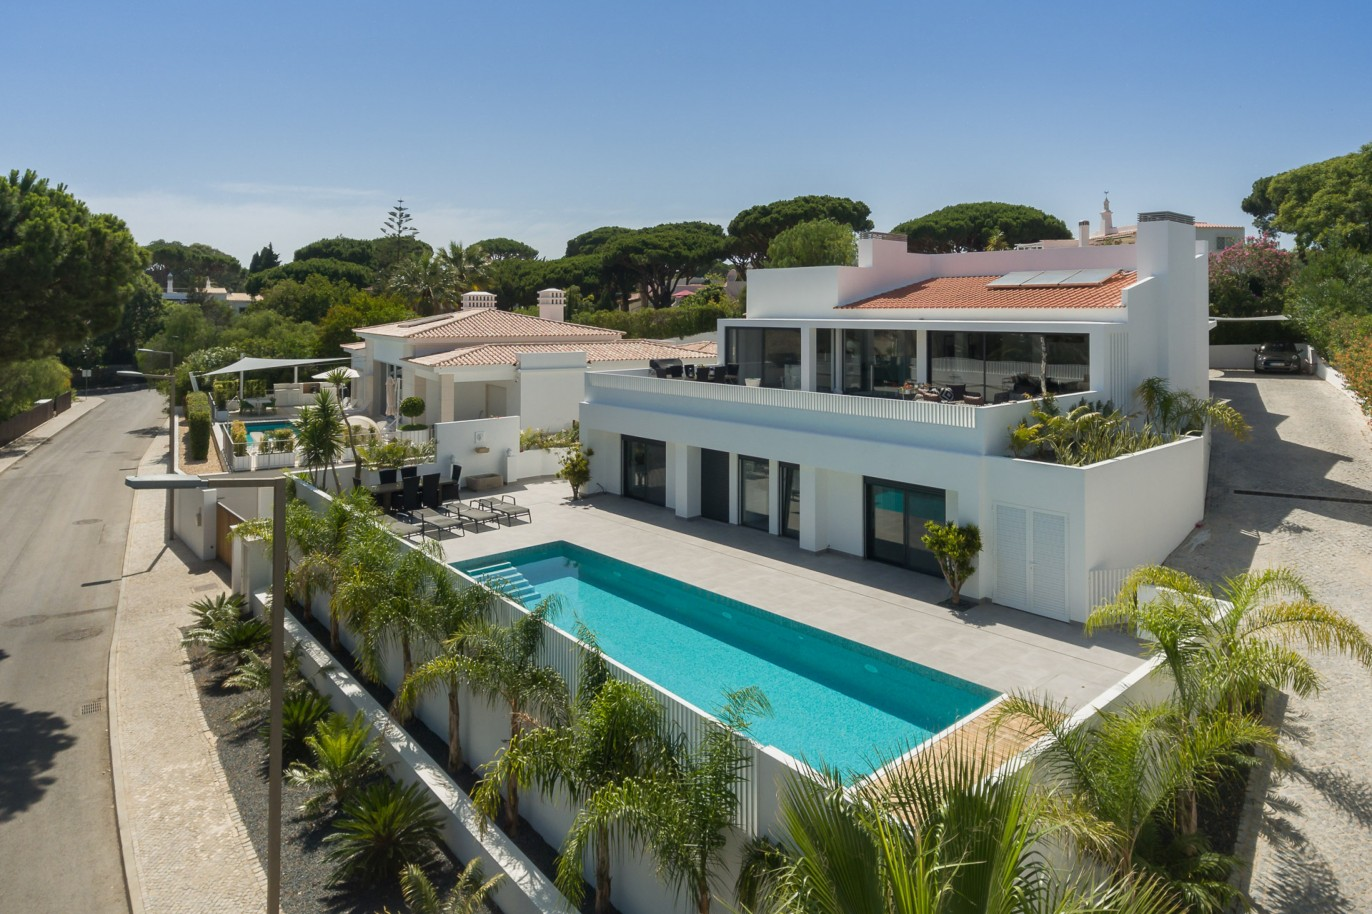 venda-de-moradia-contemporanea-com-piscina-em-vale-do-lobo-algarve